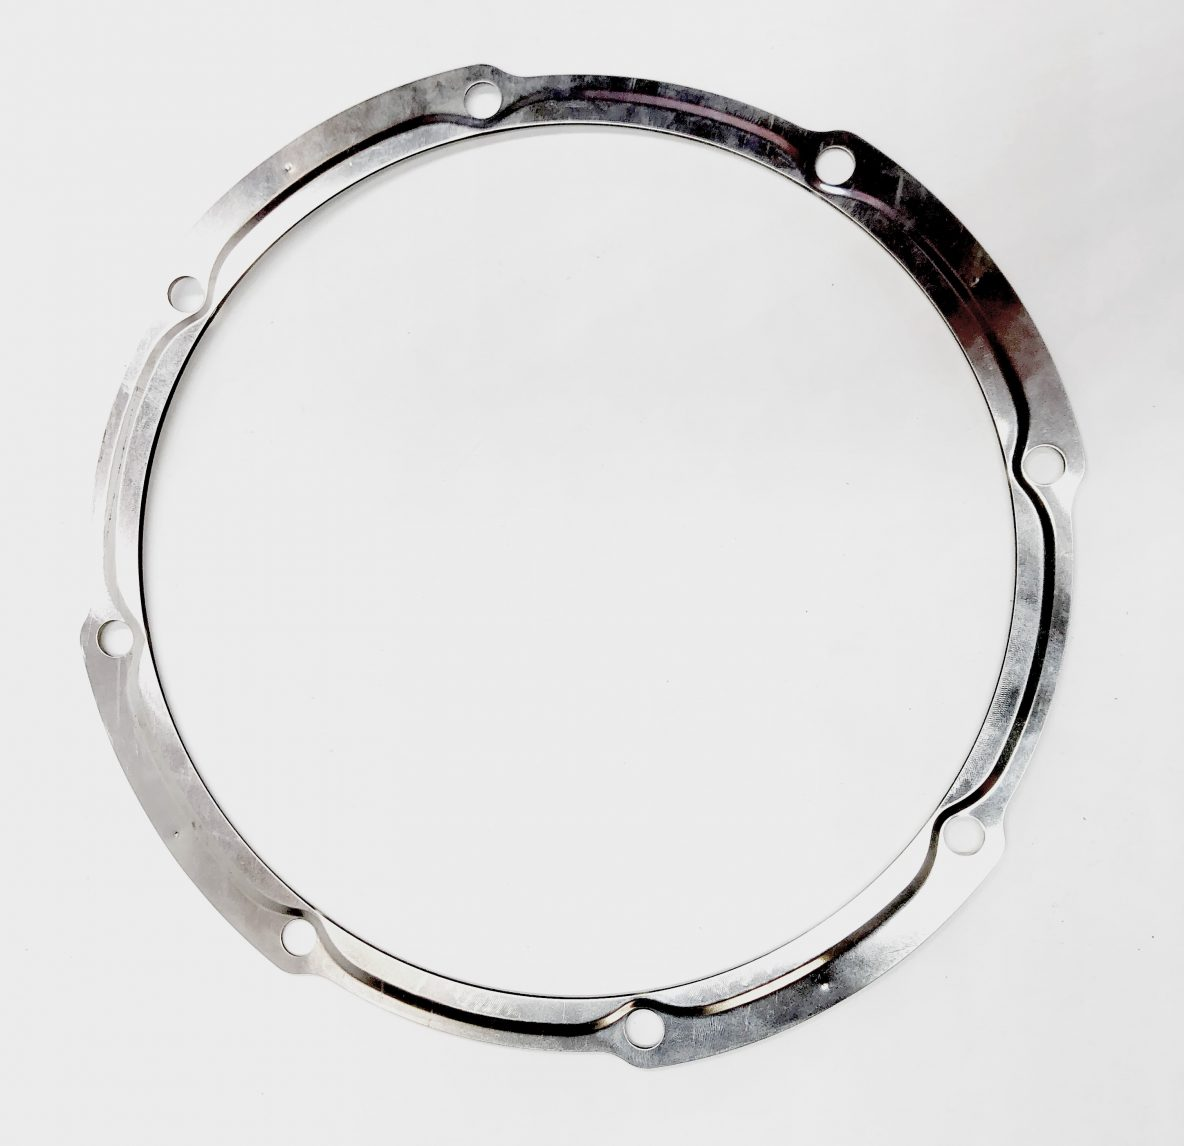 HINO DPF Gasket, 10 holes and 8.25in Diameter - ENV-G-HINO